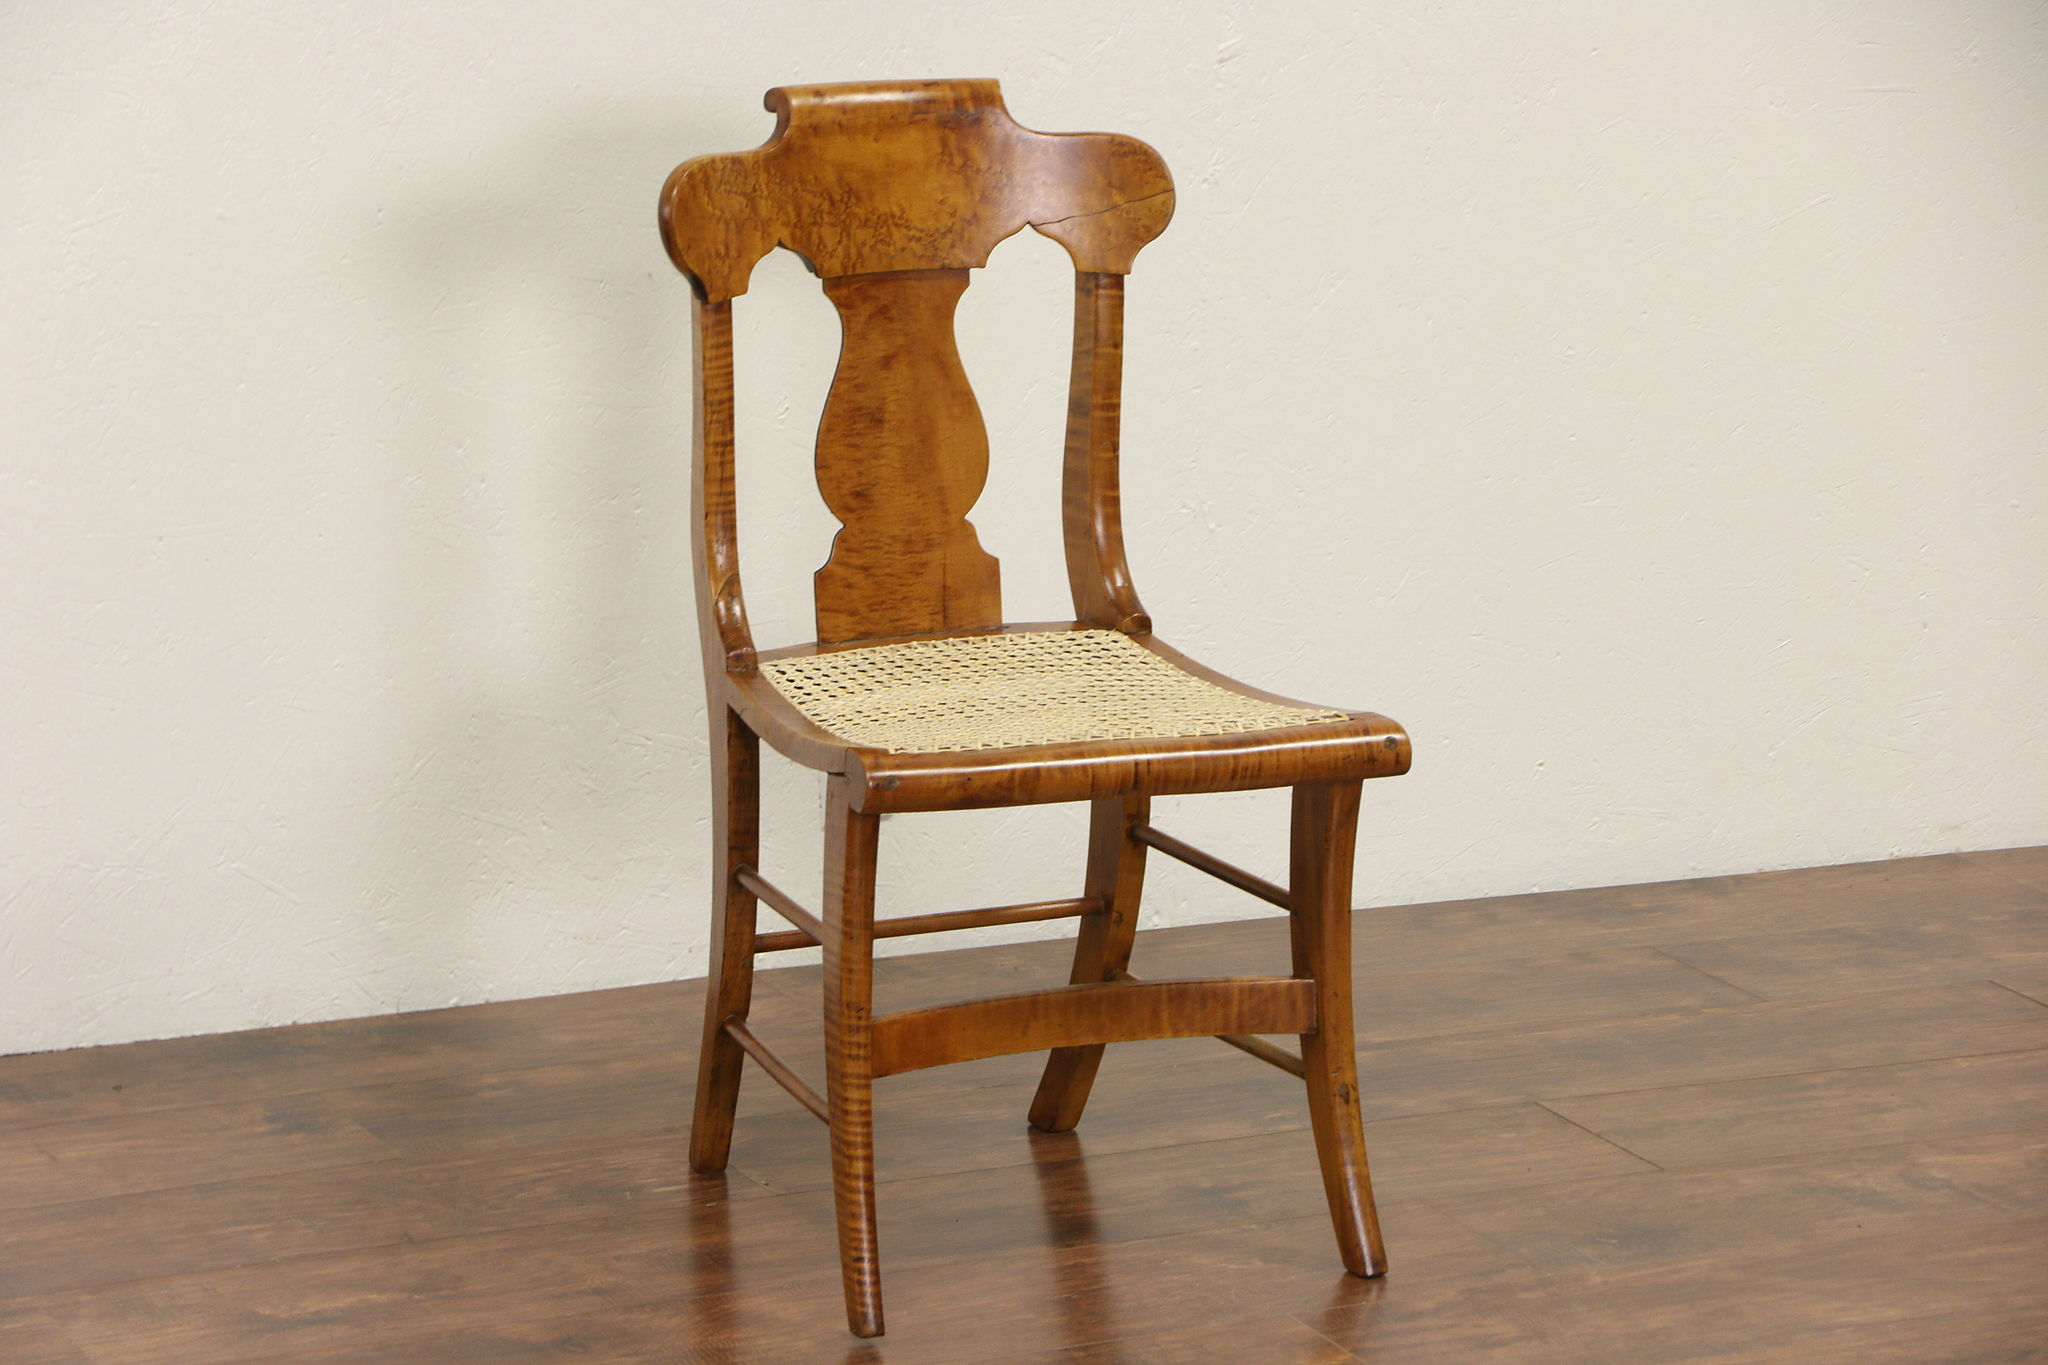 Beau Fiddle Back 1840u0027s Antique Curly Birdseye Maple New England Chair, New  Caning